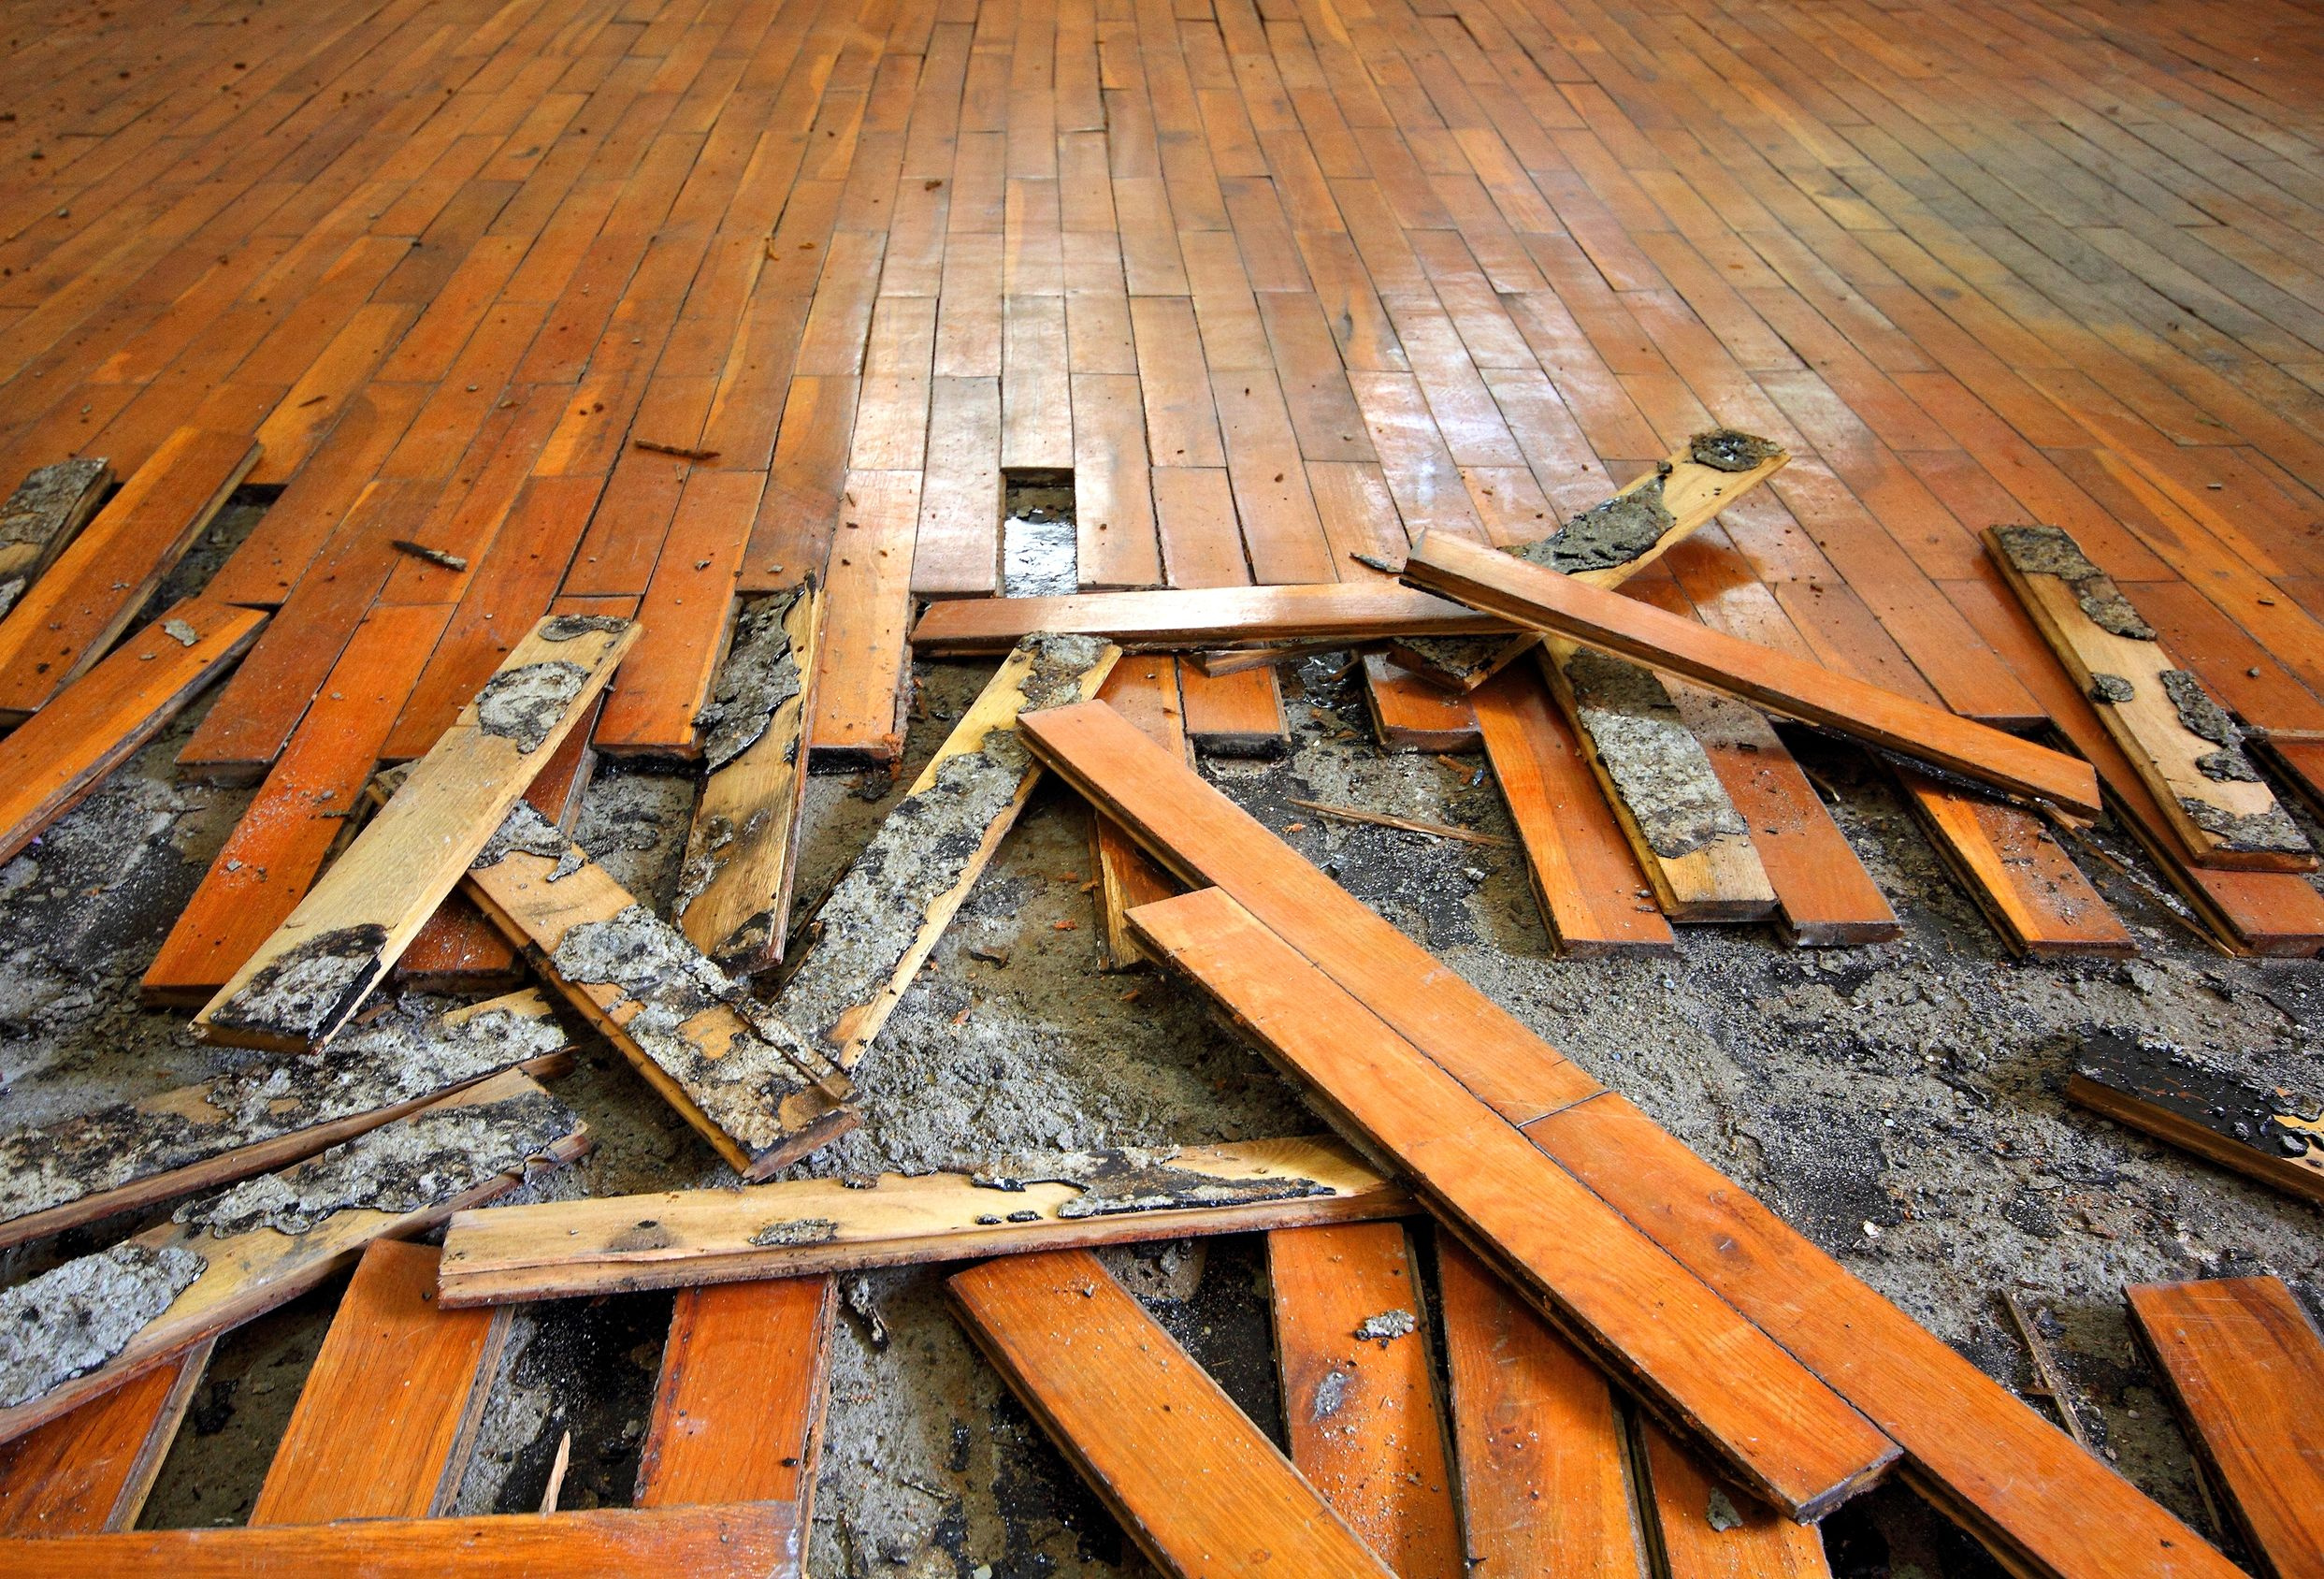 How To Repair A Water Damaged Wood Floor Woodfloordoctor Com